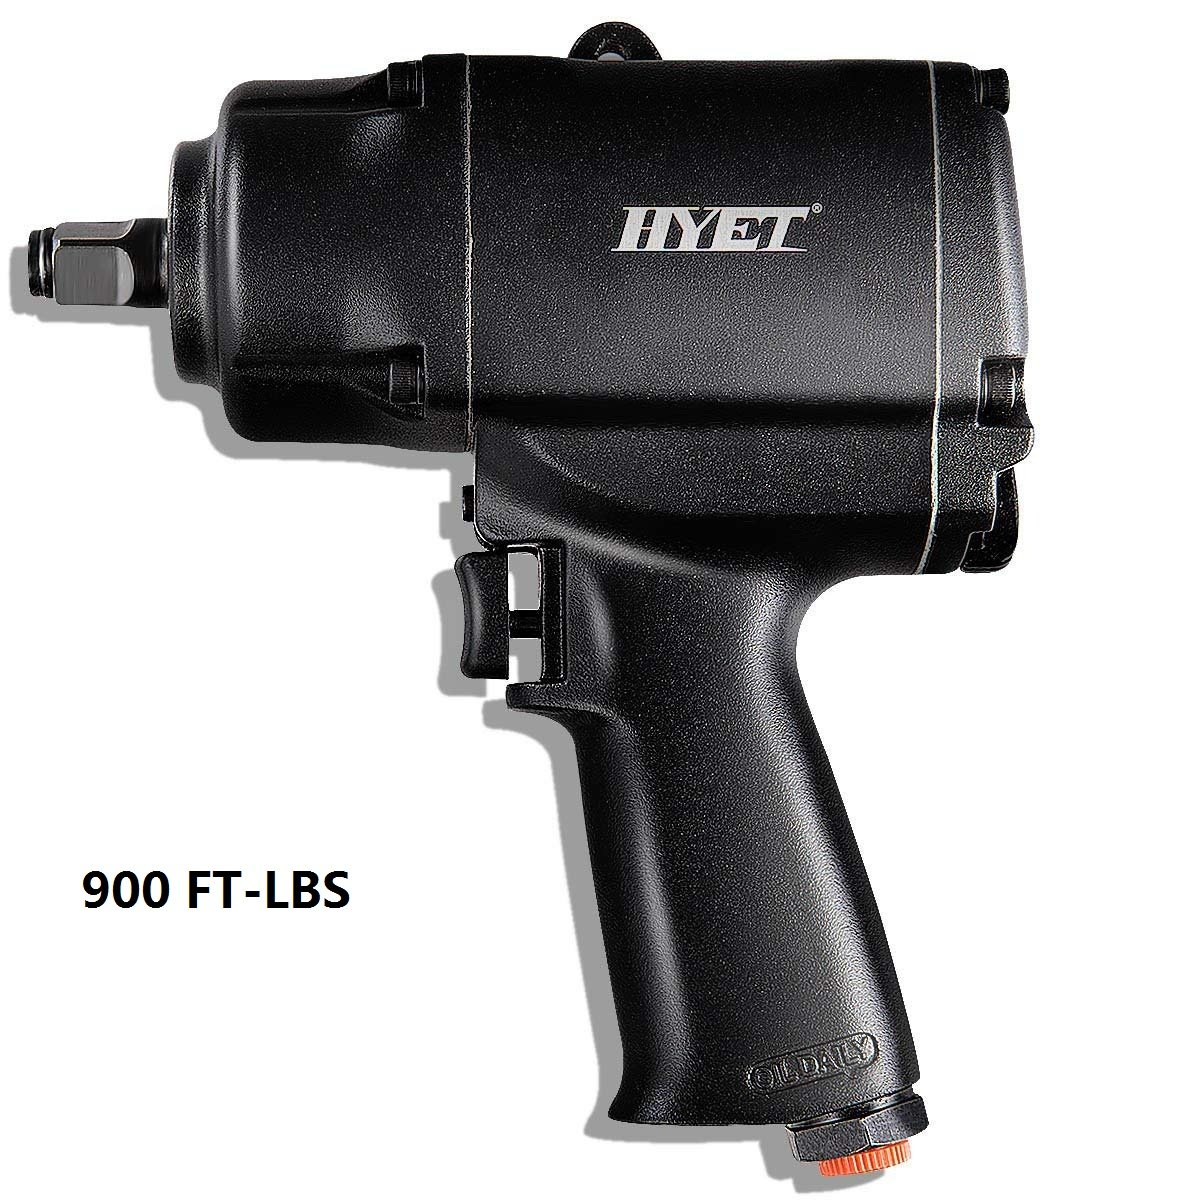 Goplus 1/2-Inch Air Impact Wrench 900 ft-lbs Heavy Duty High Torque Twin Hammer Pneumatic Tools, Black